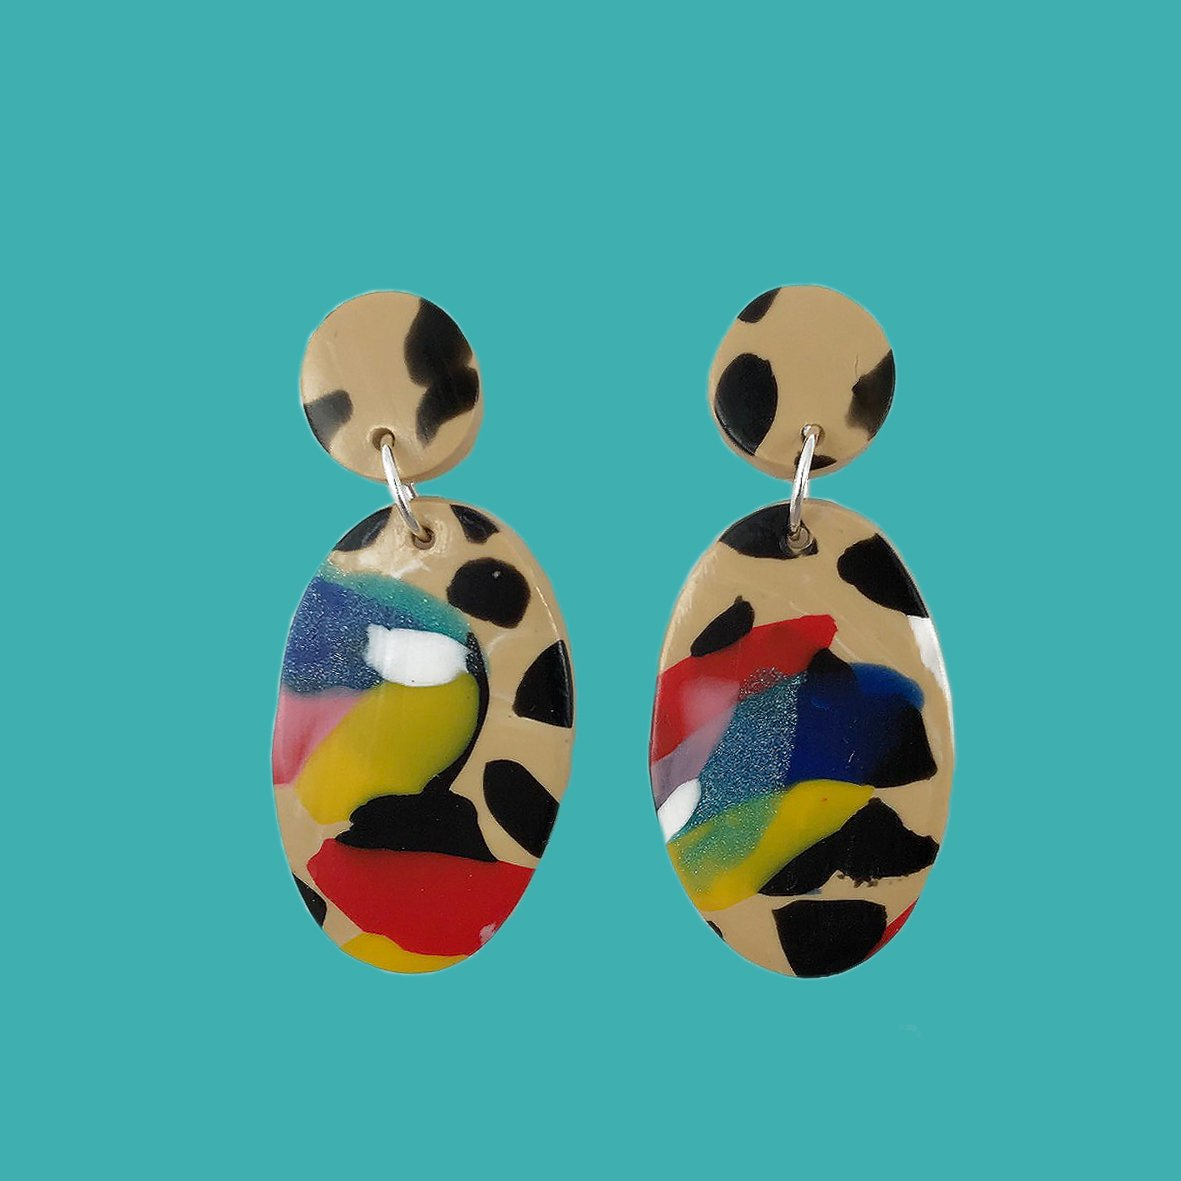 colorful earrings from Etsy